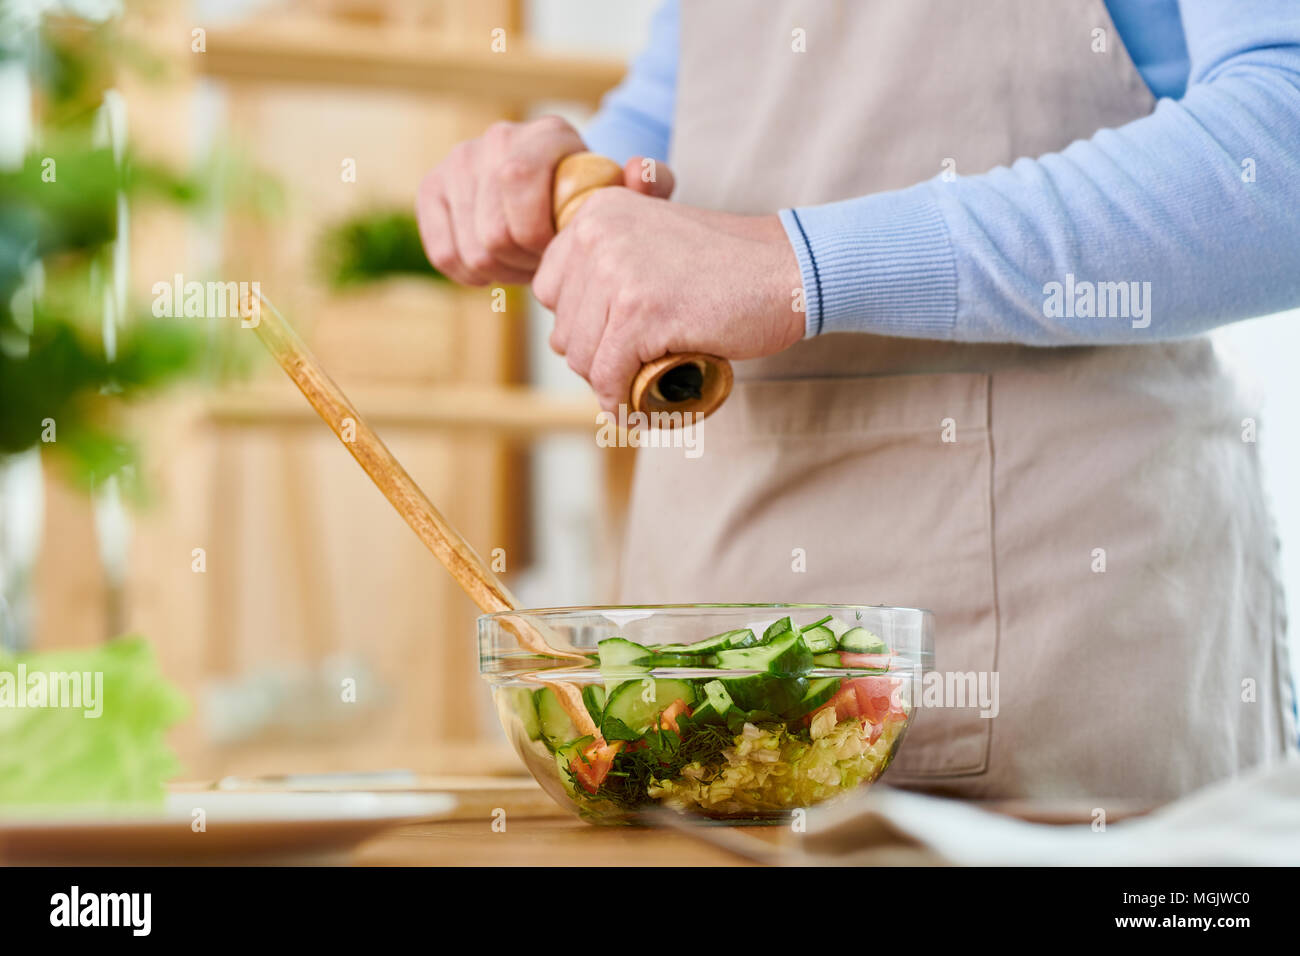 Unrecognizable man wearing apron seasoning vegetable salad with pepper while preparing festive dinner for his family, close-up shot - Stock Image